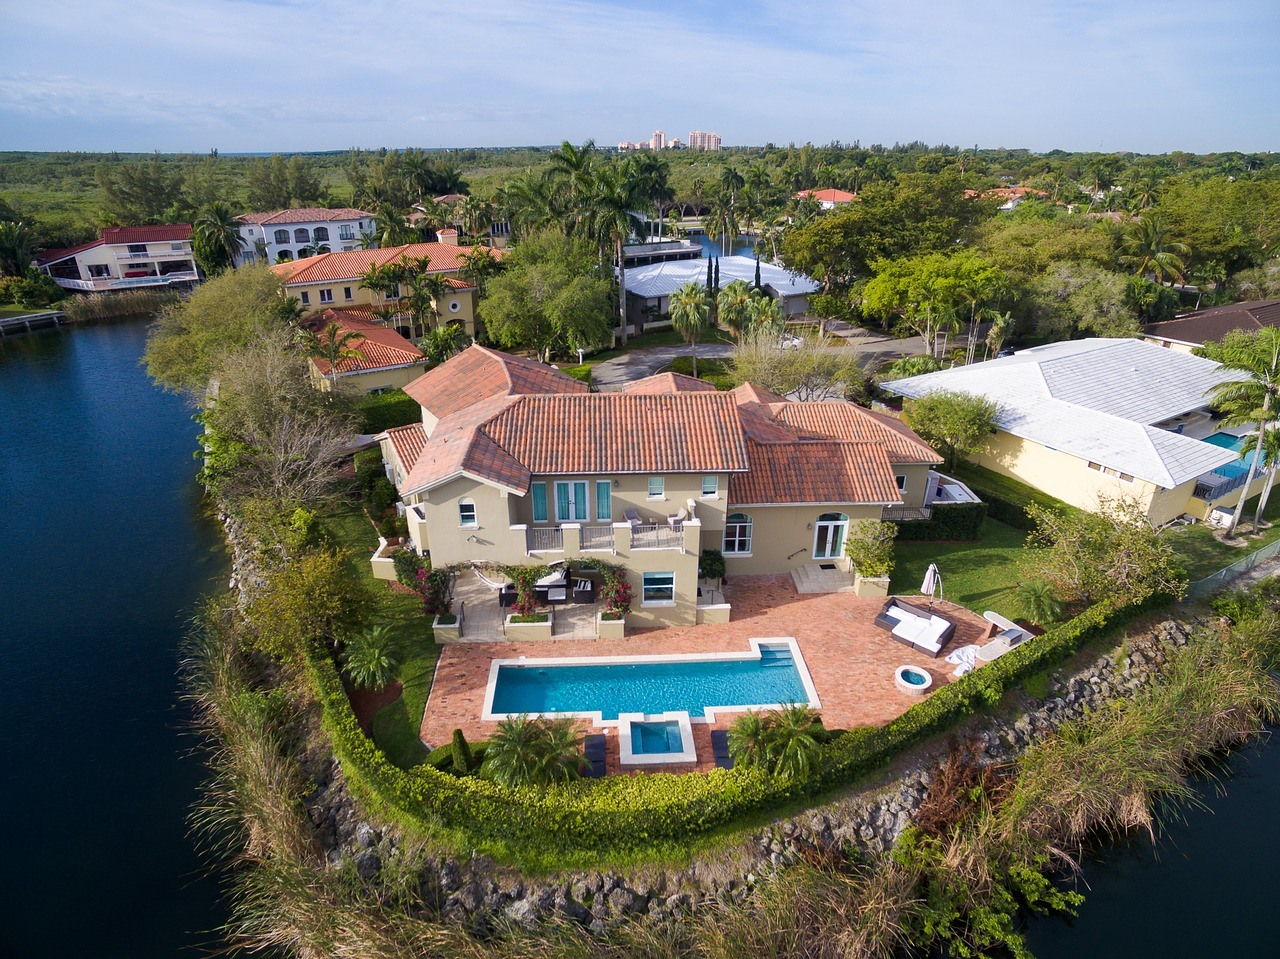 An aerial view of one of the most liveable places in South Florida.